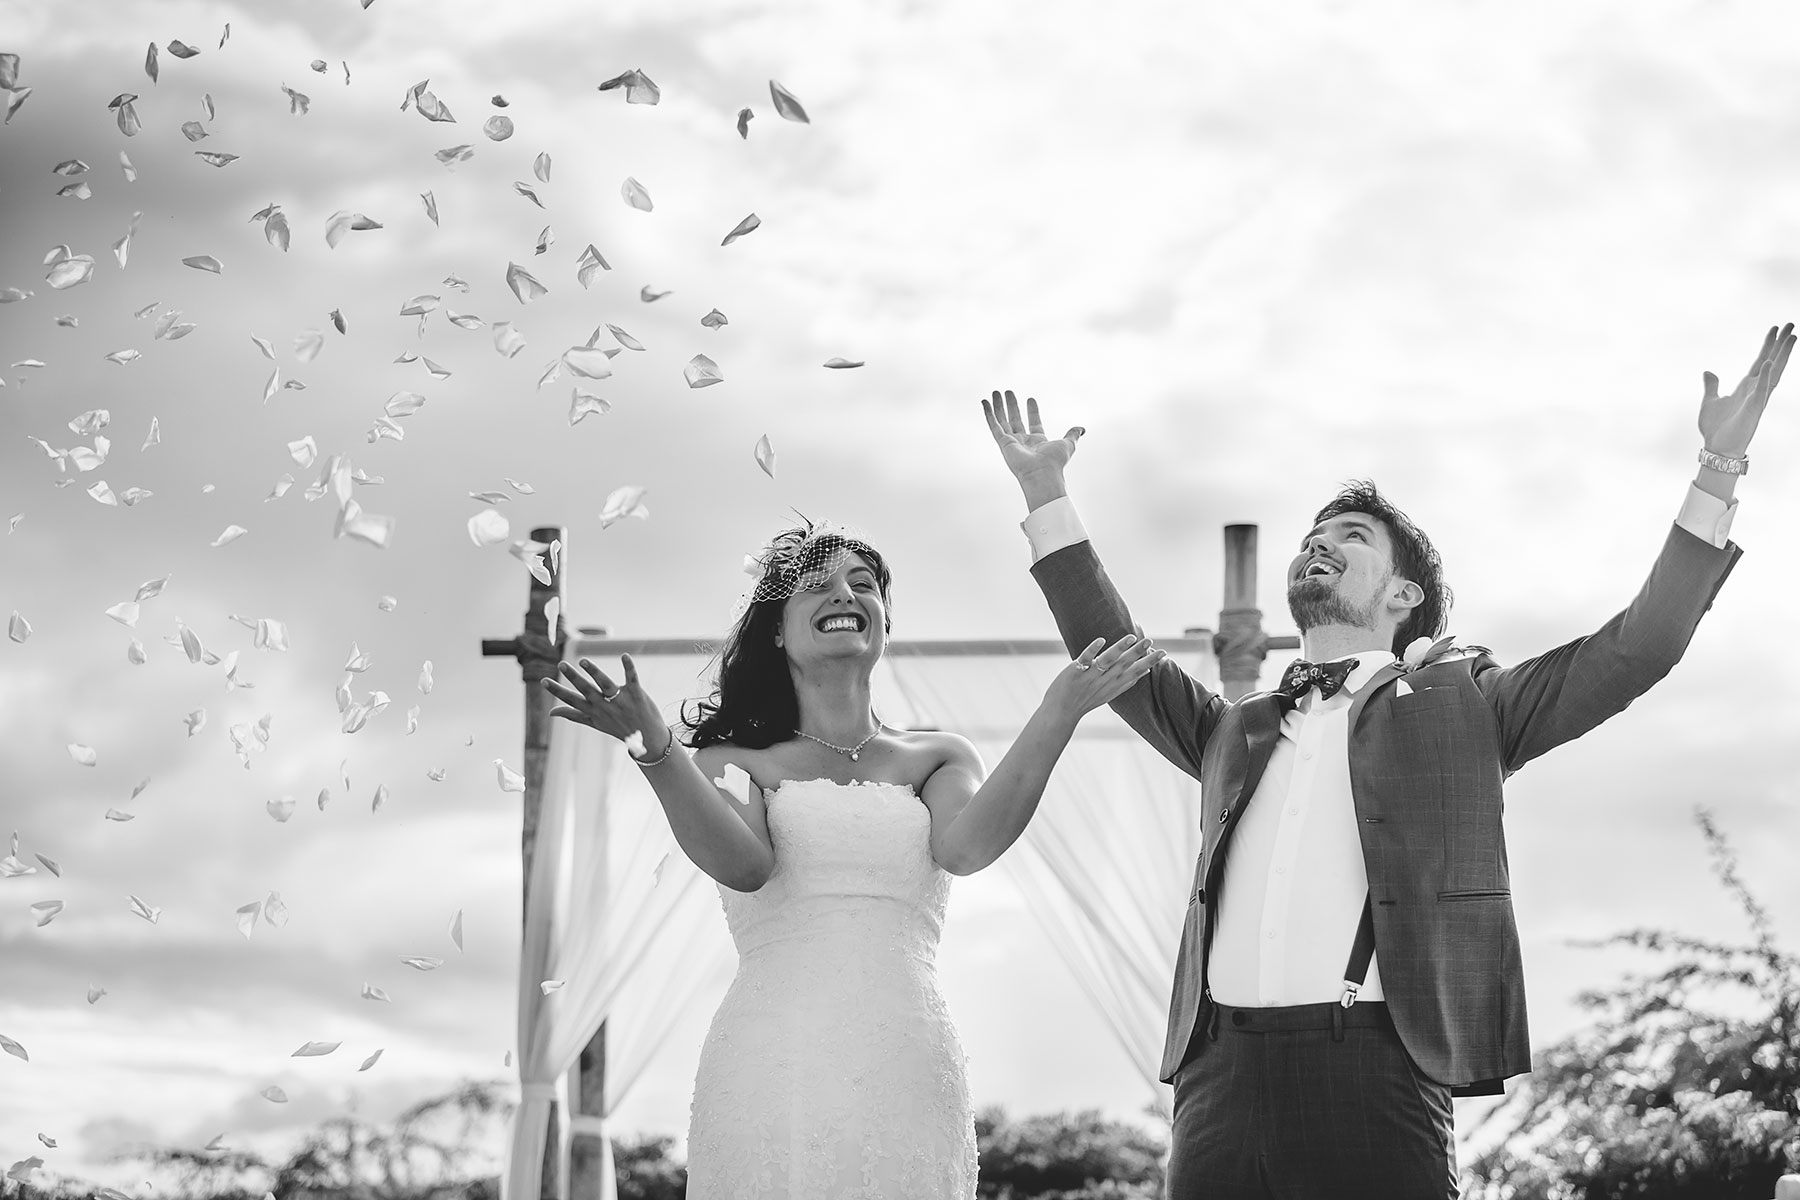 Bride in Groom tossing rose petals in the air, laughing and enjoying their wedding day. A black and white image taken by Tiny House Photo.